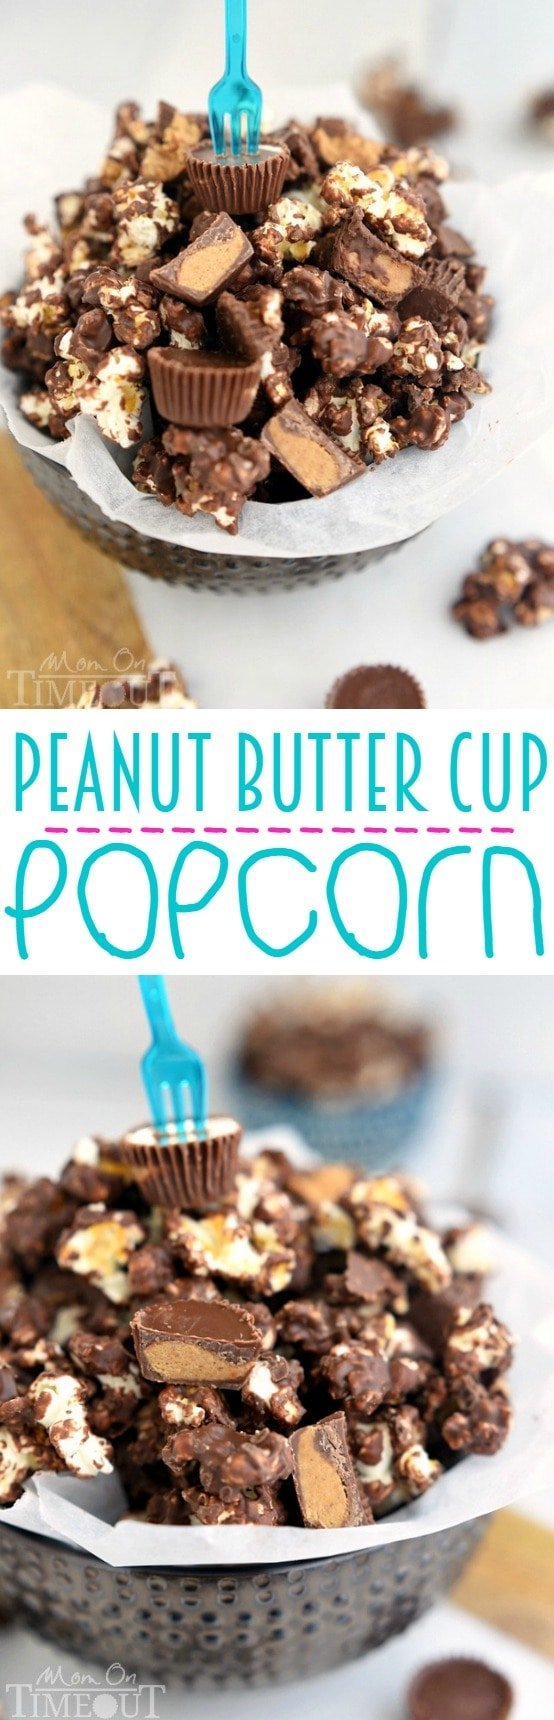 ... this Peanut Butter Cup Popcorn with an explosion of peanut butter